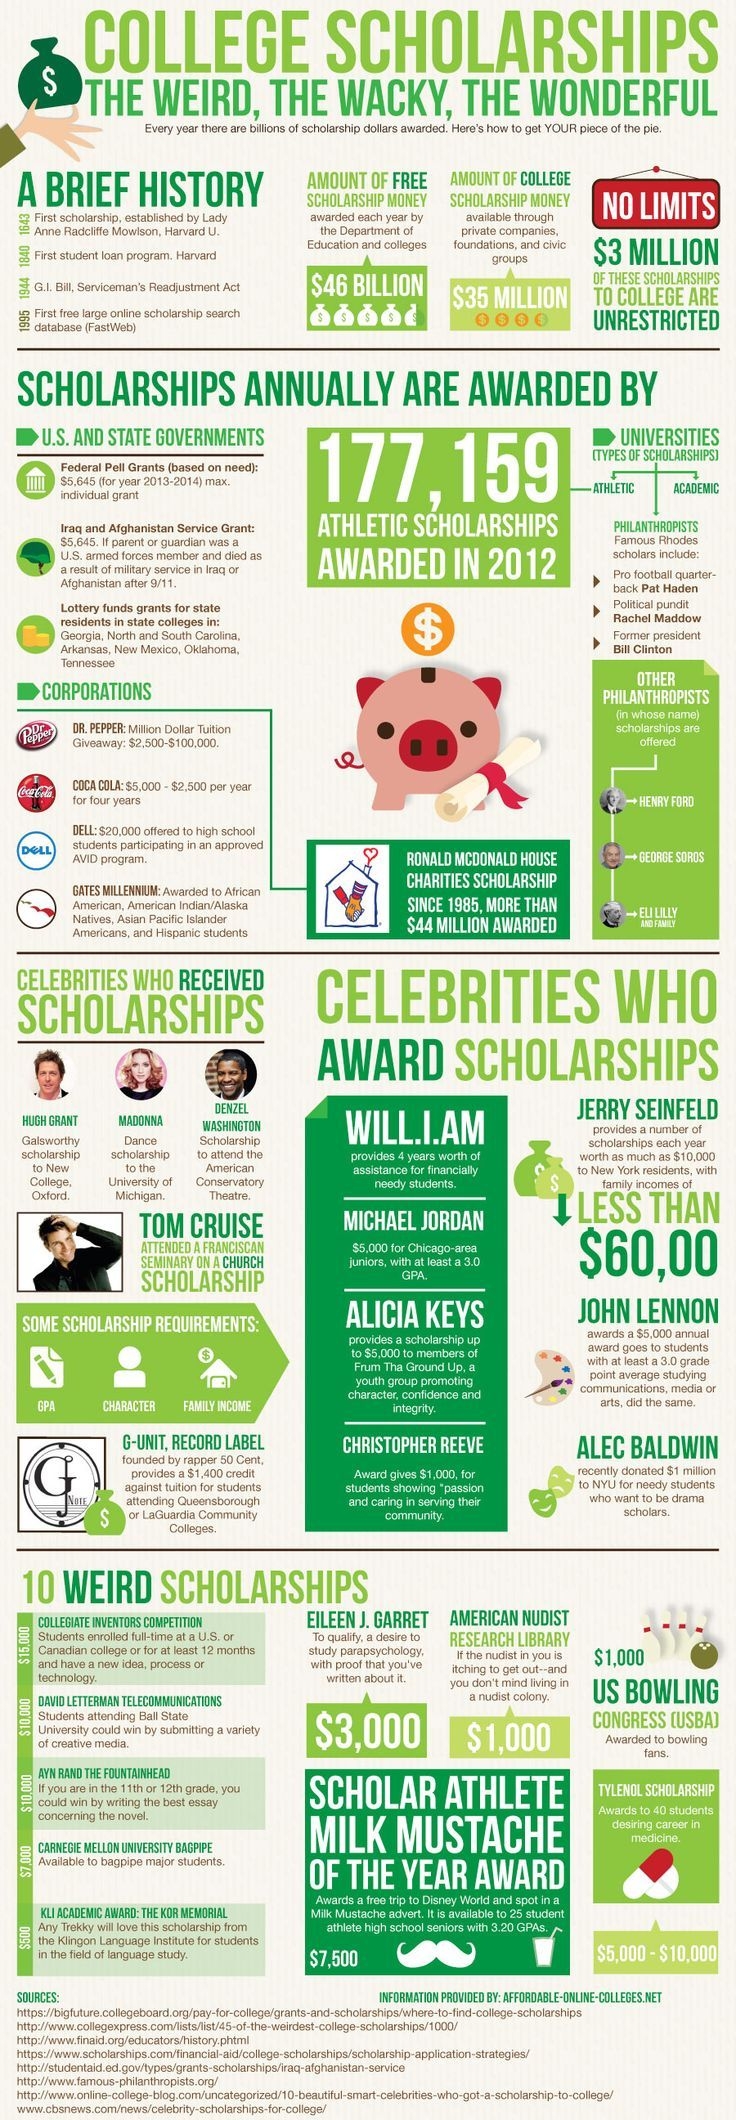 best ideas about college tips radios single check out this college scholarship infographic lots of fun information you can use